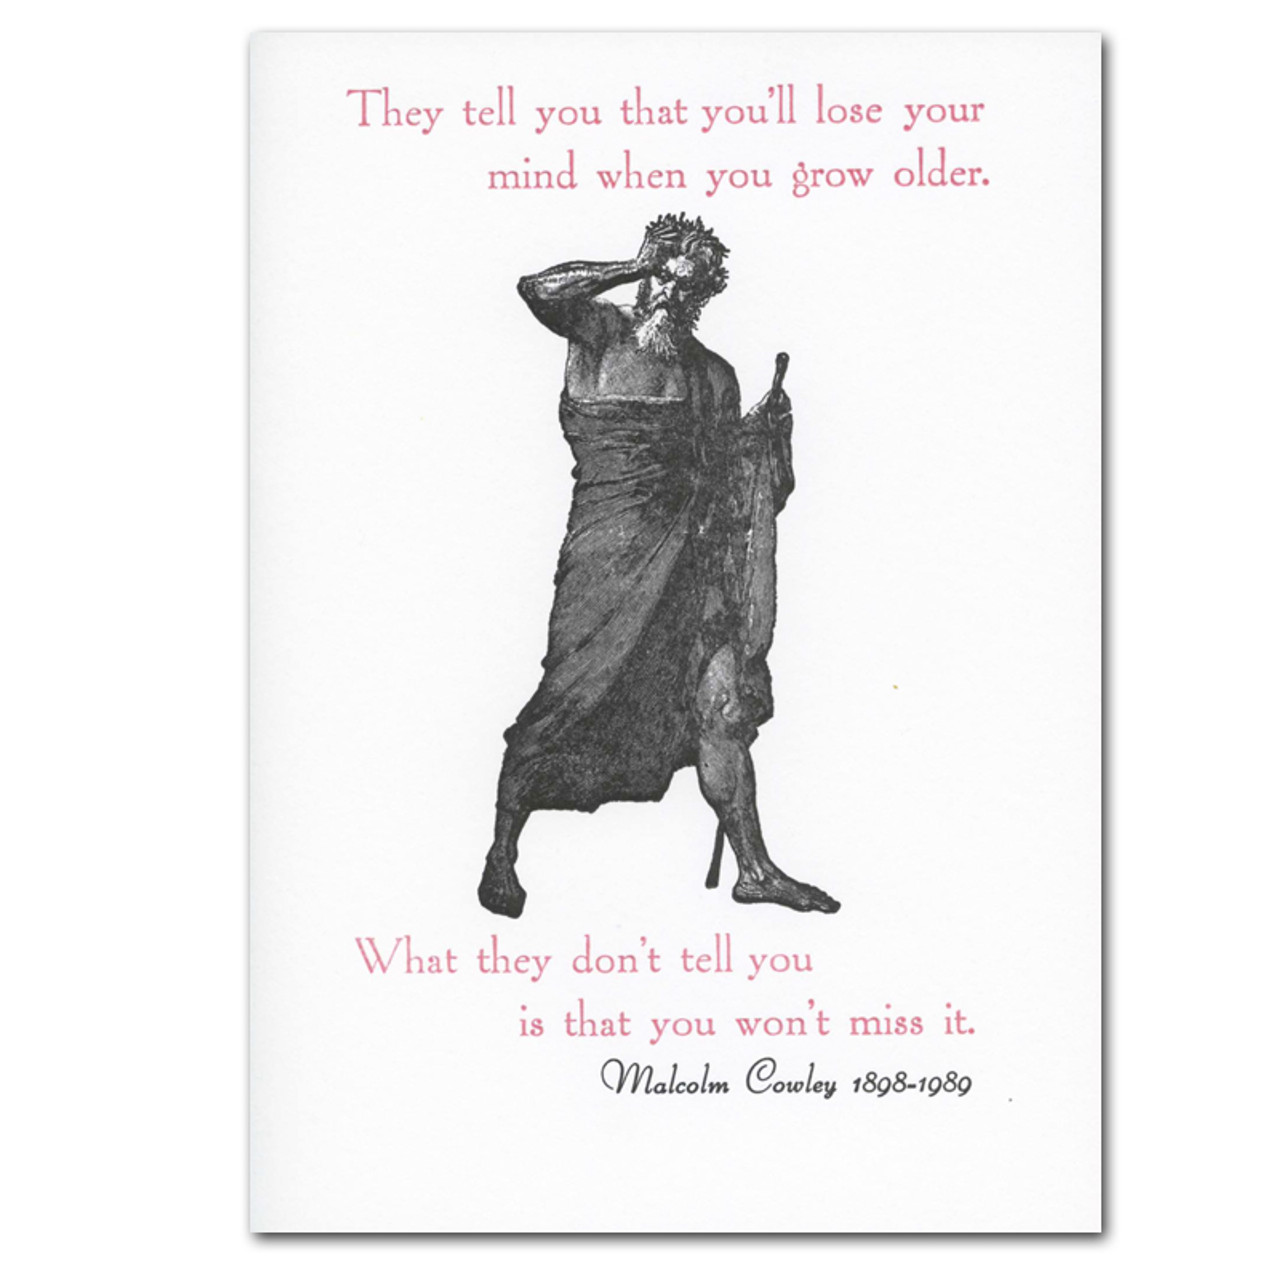 "Saturn Press Quotation Card ""Lose Your Mind: Cowley"" Cover shows vintage drawing of a man wearing a robe carrying a staff with a quote from Malcolm Cowley ""They tell you you'll lose your mind when you grow older. What they don't tell you is that you won't miss it."""